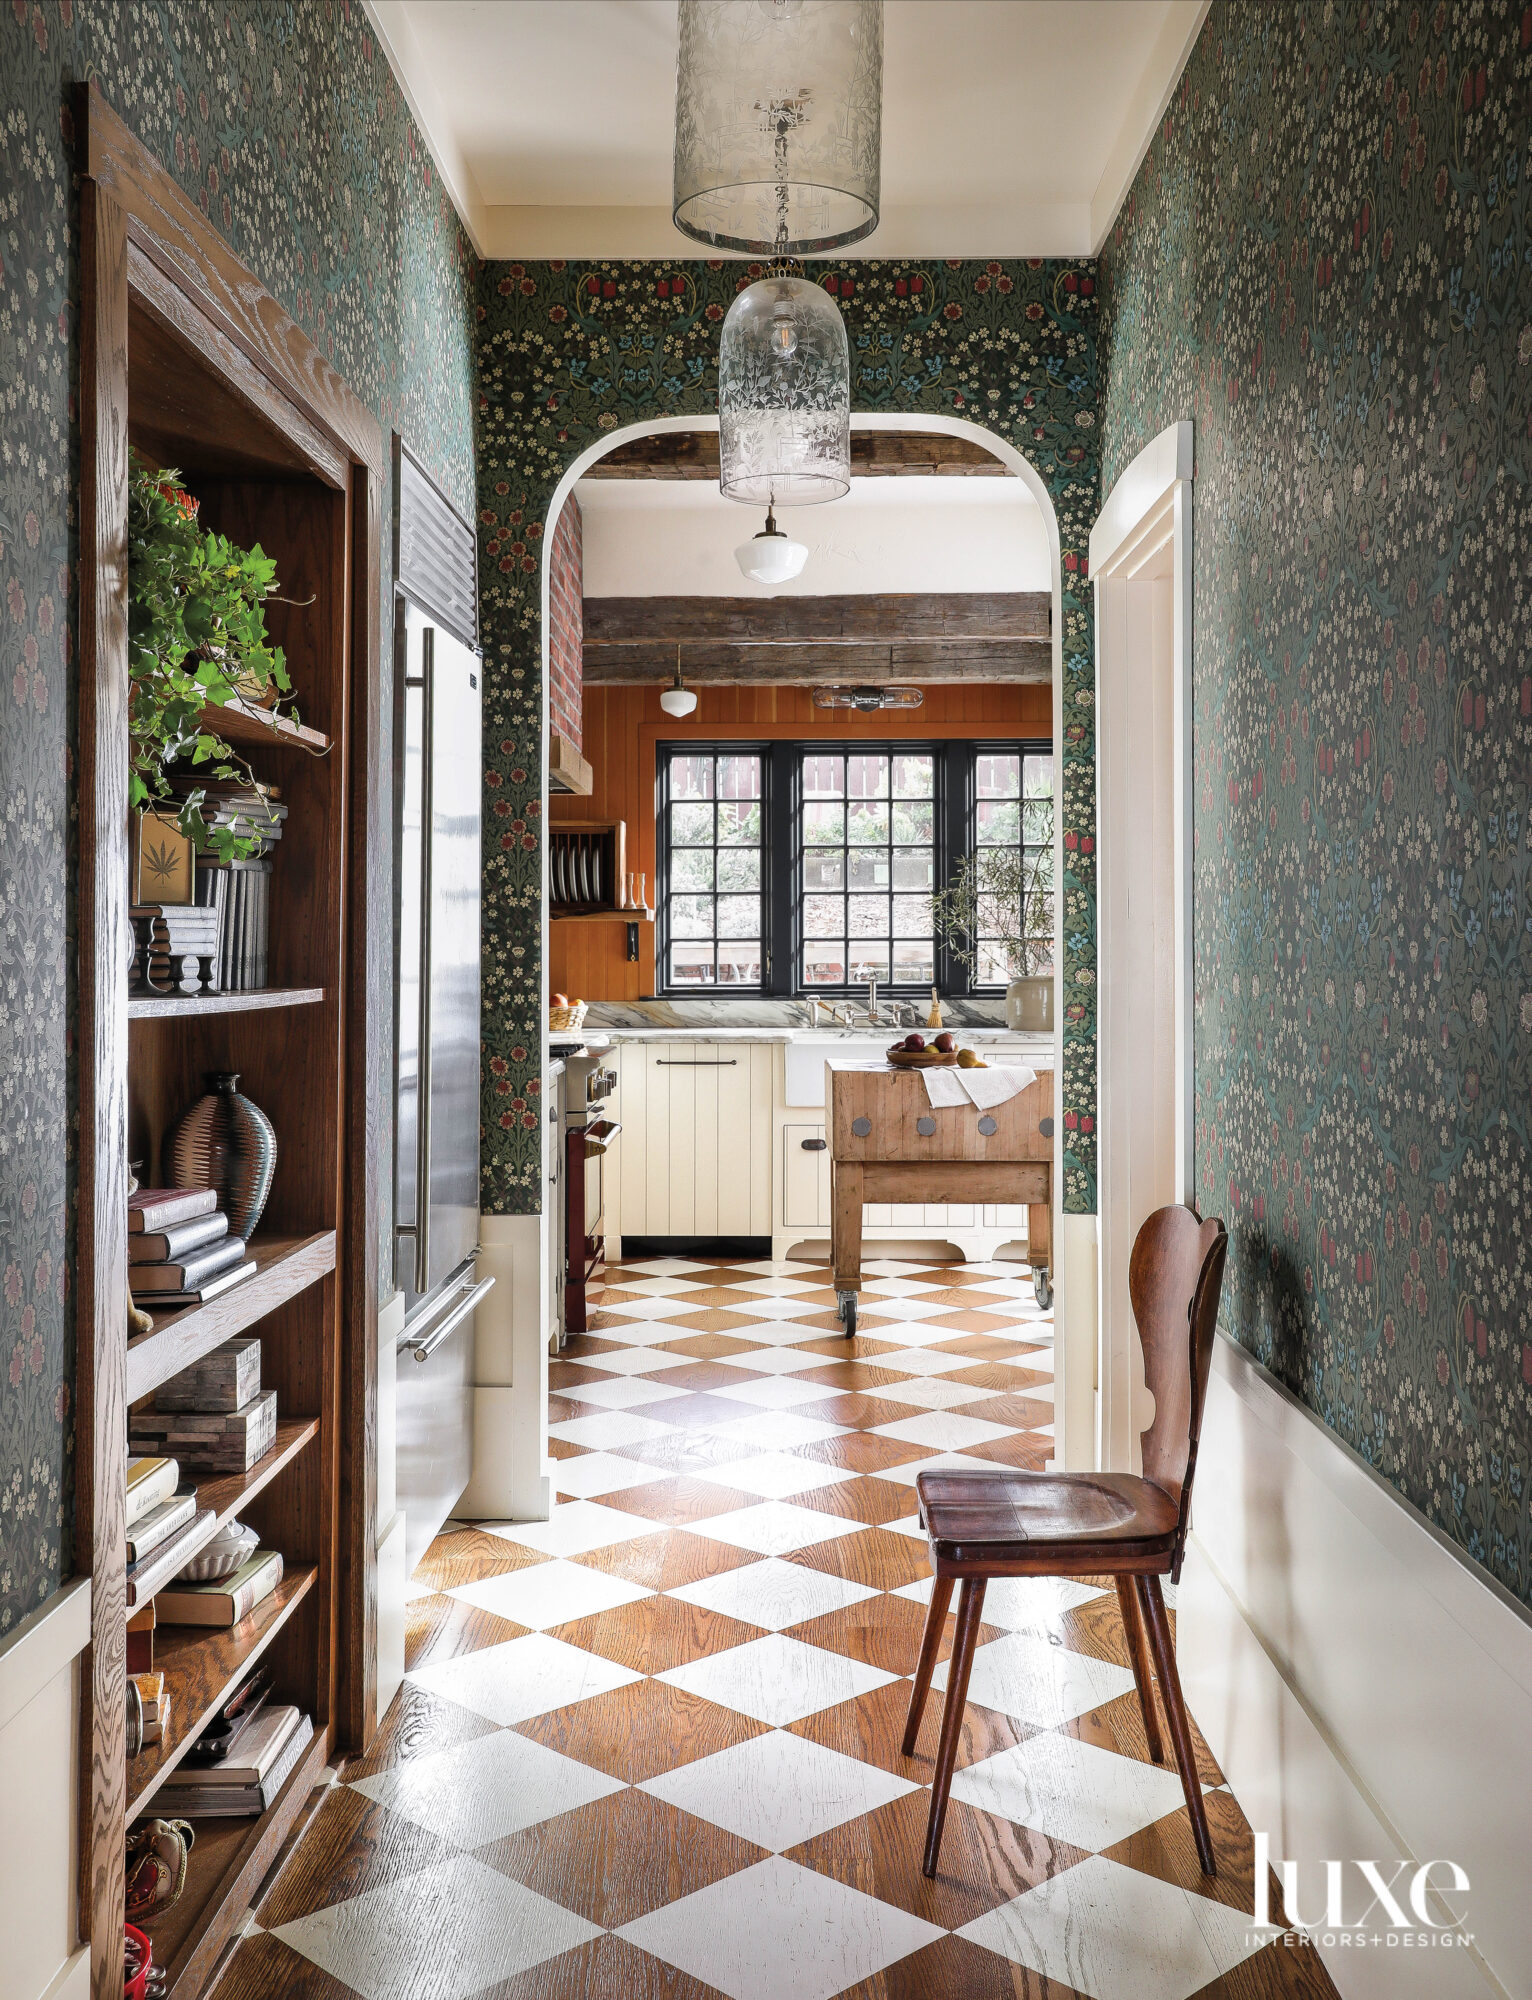 A hallway leading into a kitchen has a checkerboard pattern on the floor.